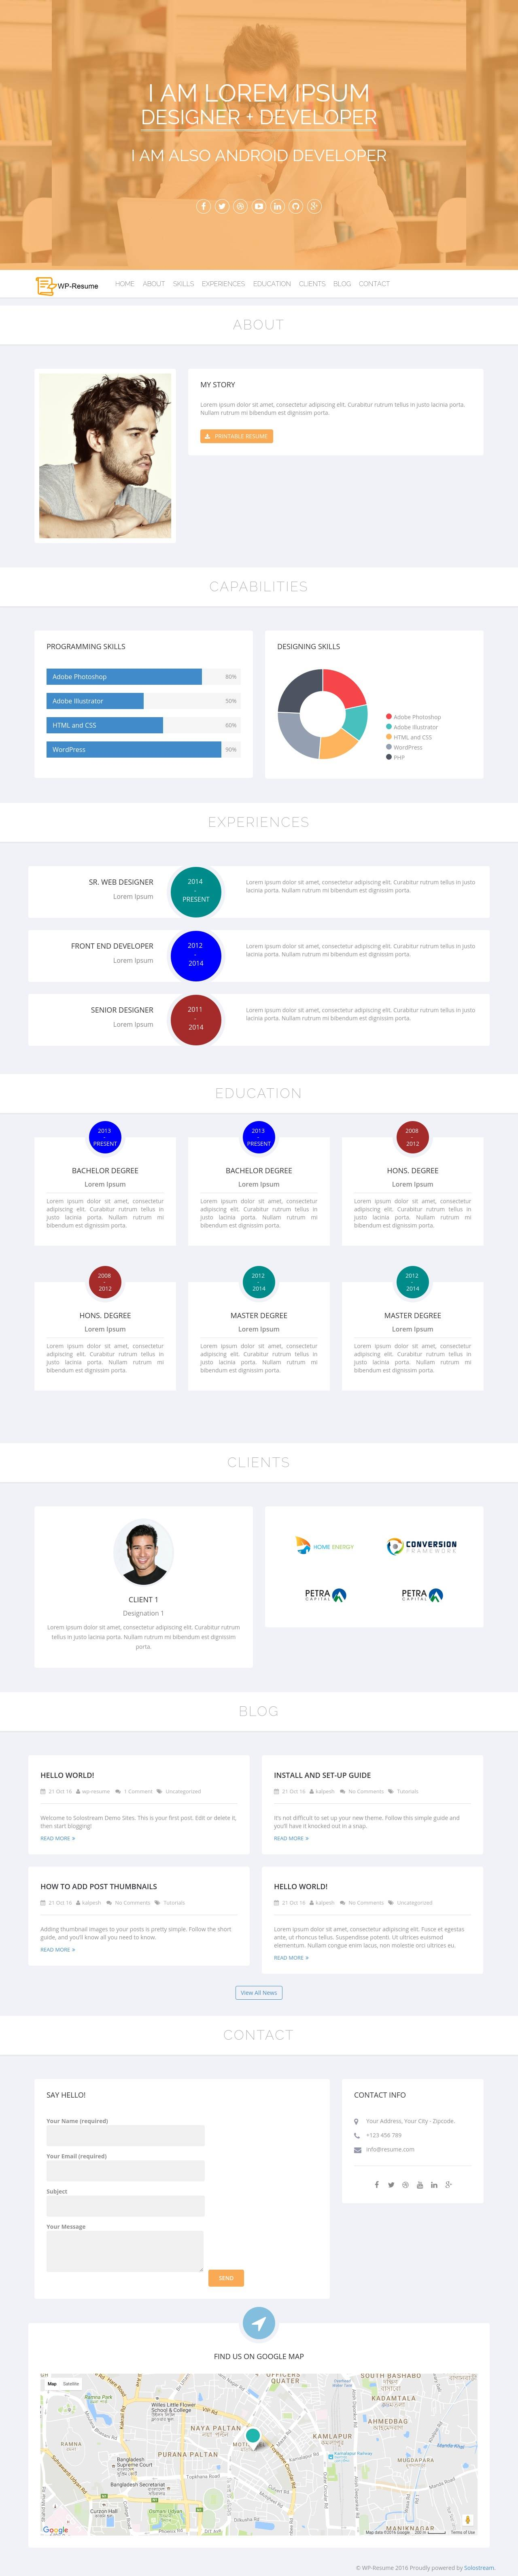 wp resume solostream wordpress theme 01 - wp-resume-solostream-wordpress-theme-01